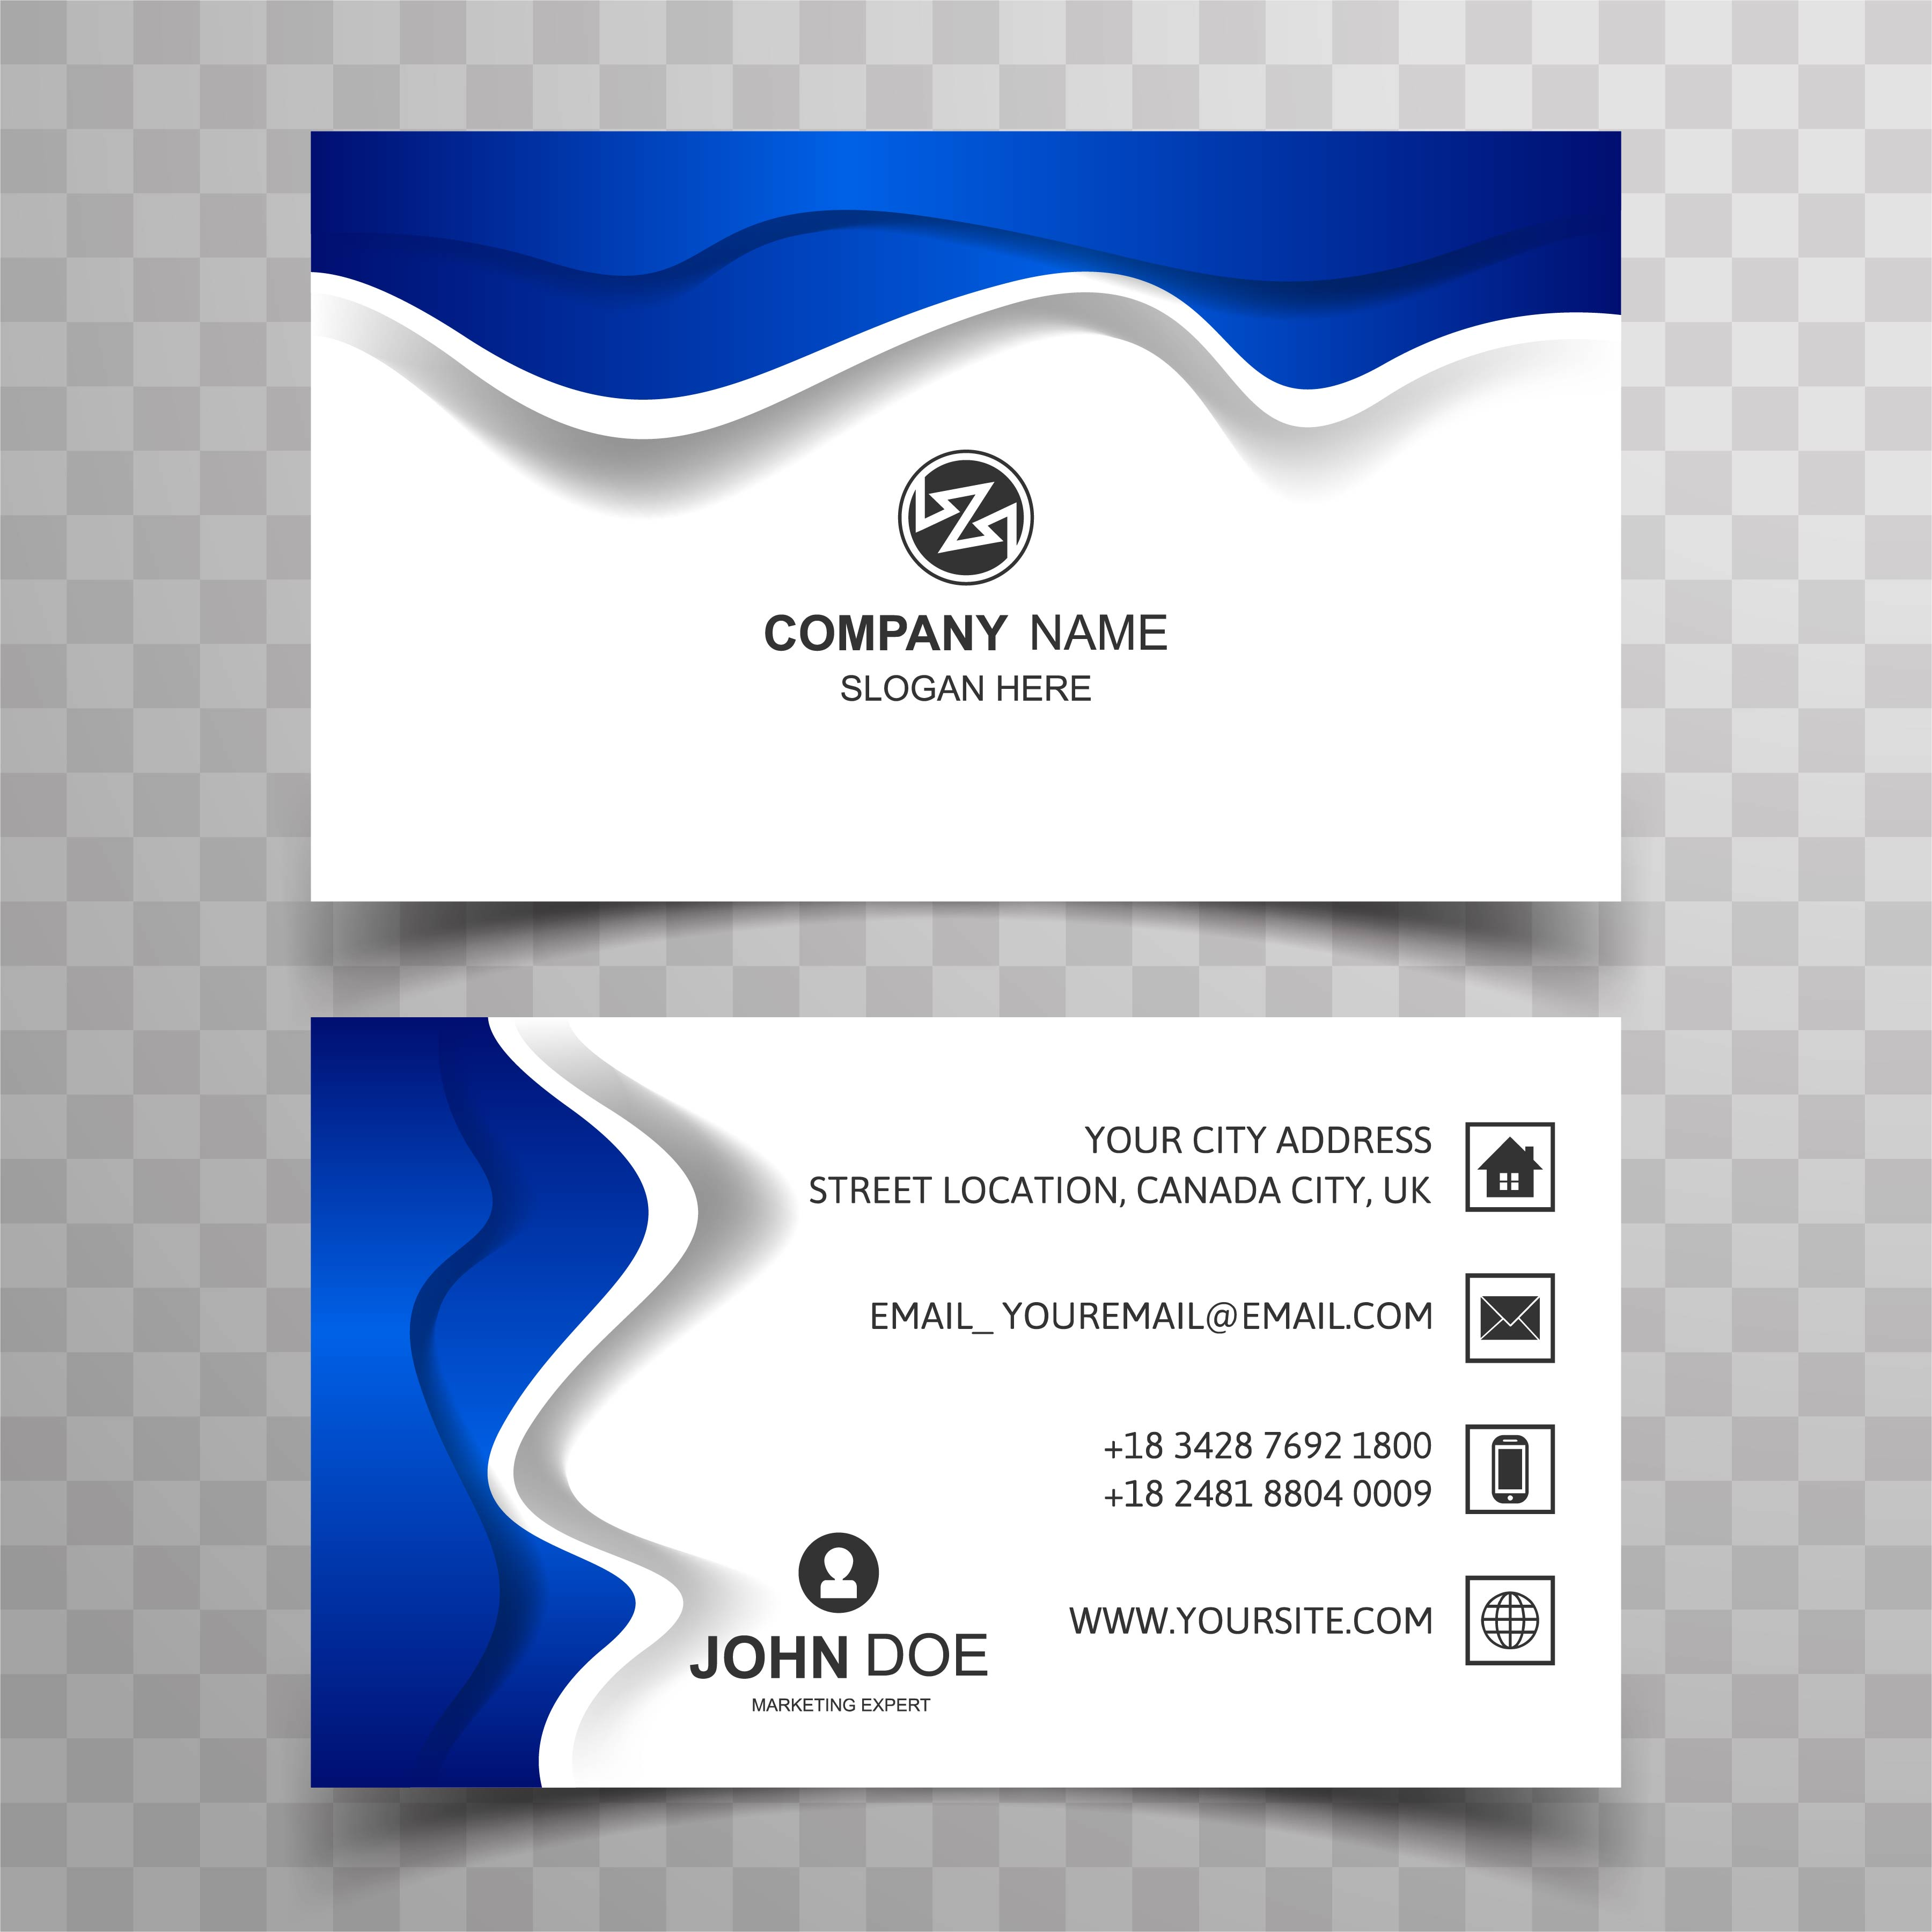 Modern business card background download free vector art stock modern business card background download free vector art stock graphics images colourmoves